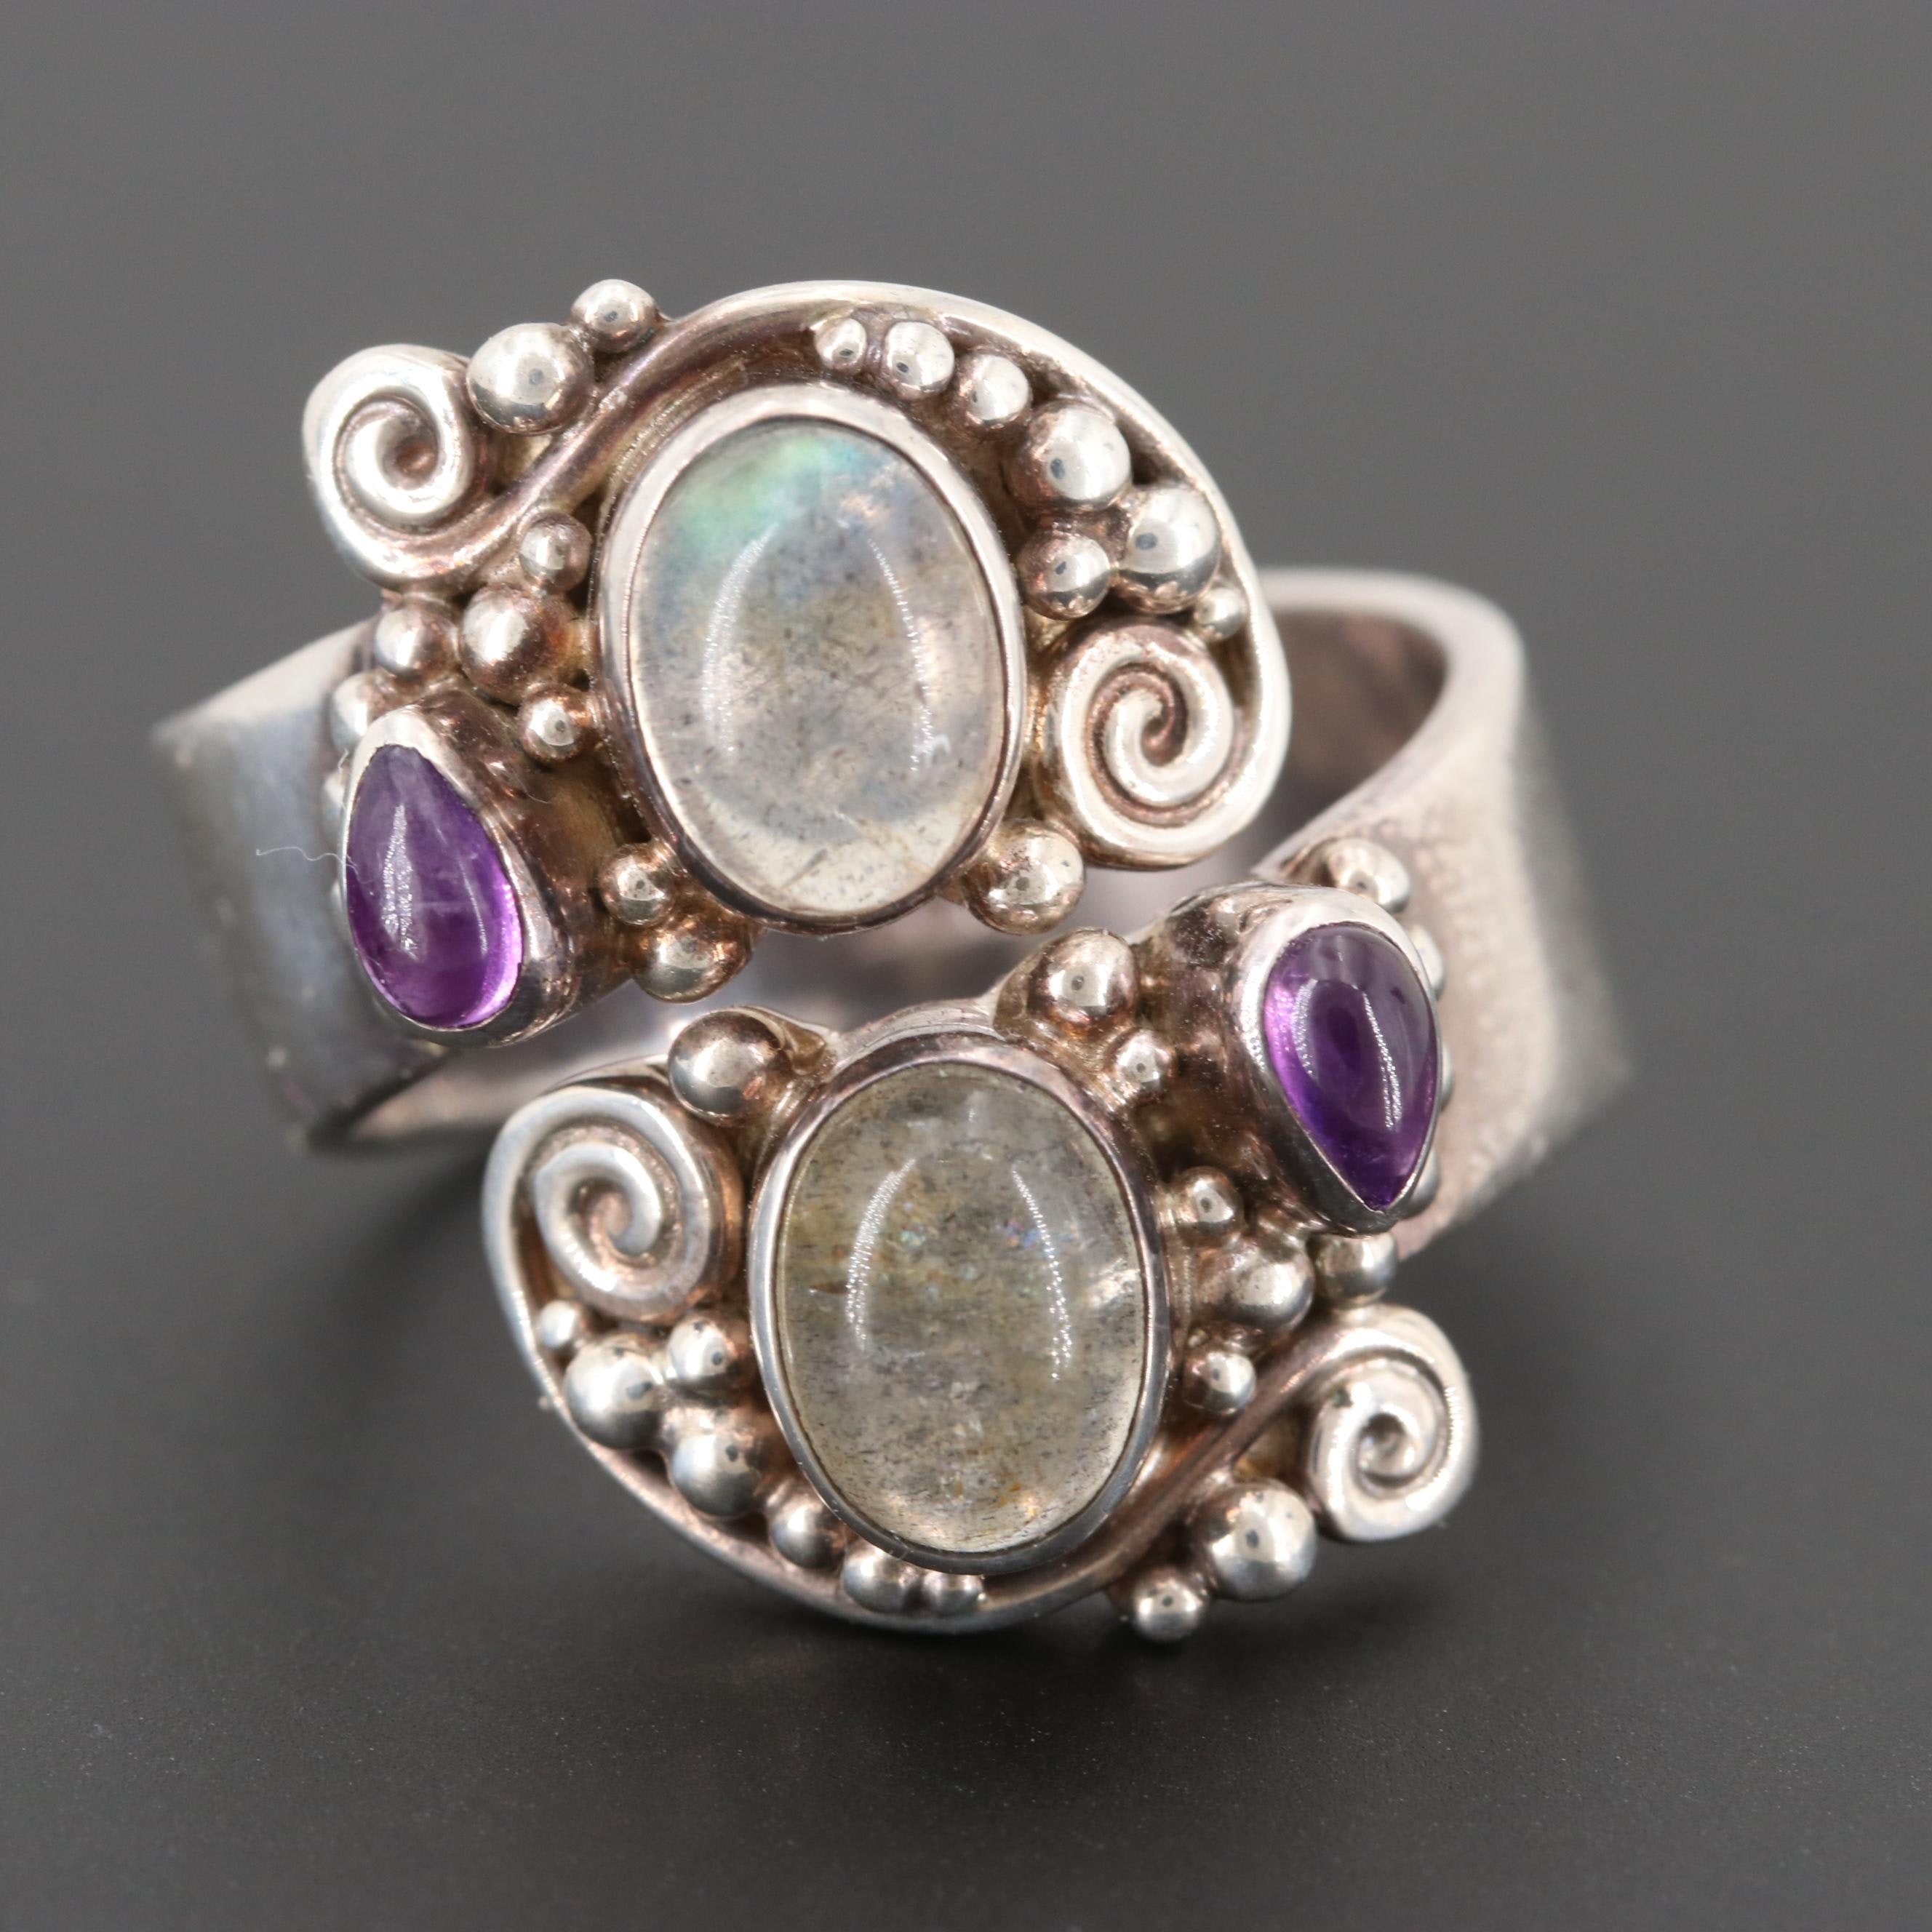 Sajen Sterling Silver Labradorite and Amethyst Bypass Ring